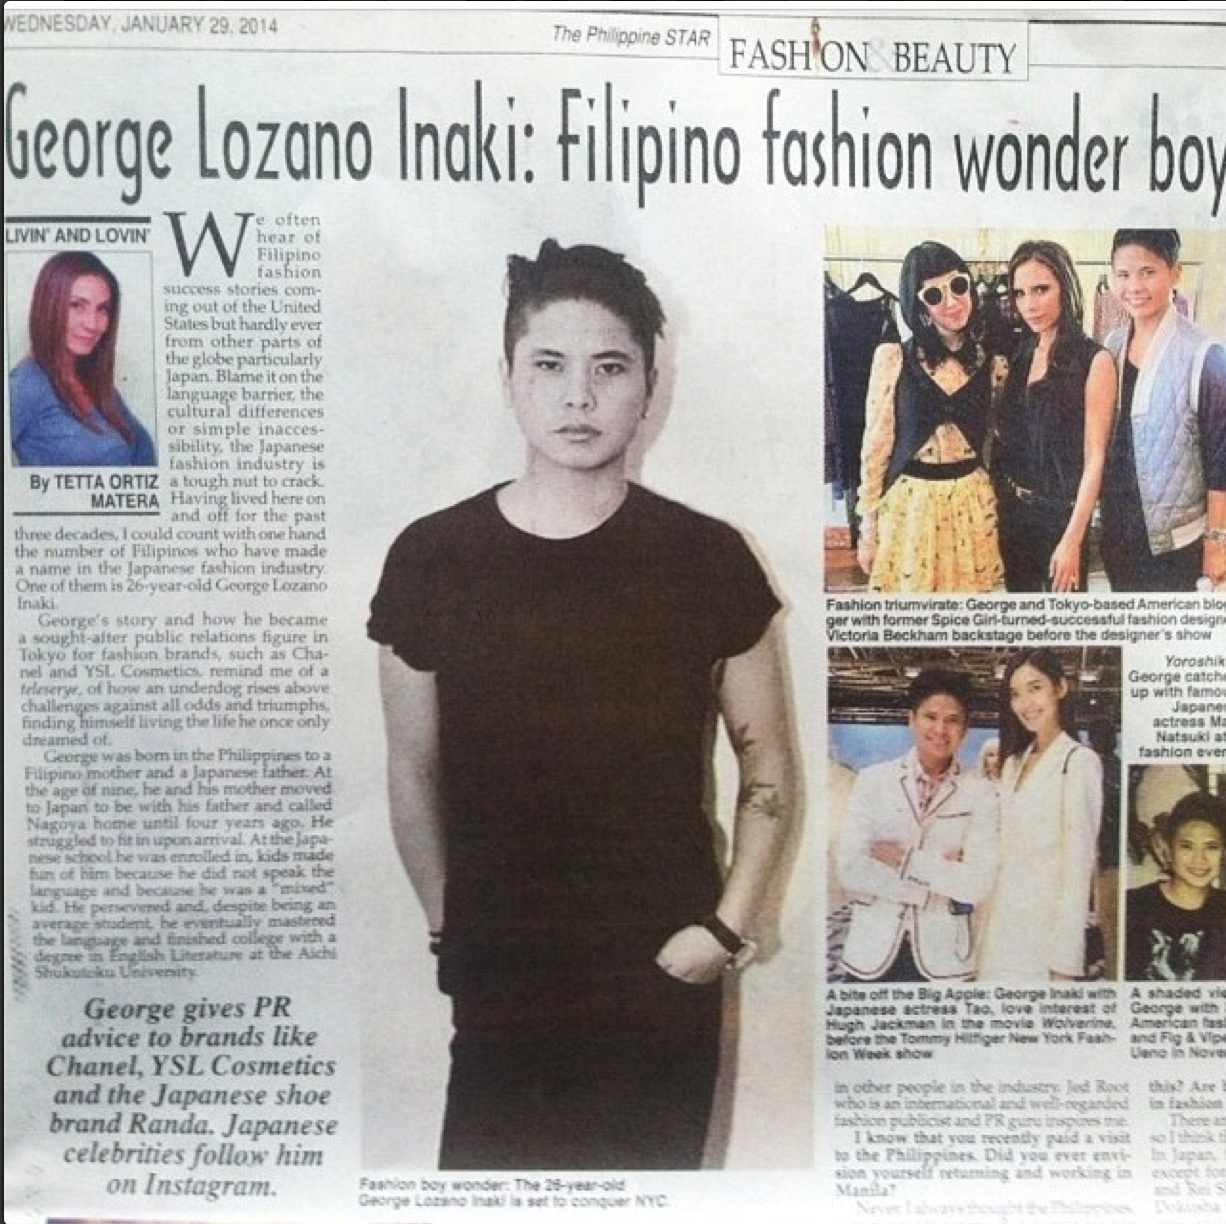 Featured by Phil Star in January, 2014: http://www.philstar.com/fashion-and-beauty/2014/01/29/1284004/george-lozano-inaki-filipino-fashion-wonder-boy-tokyo